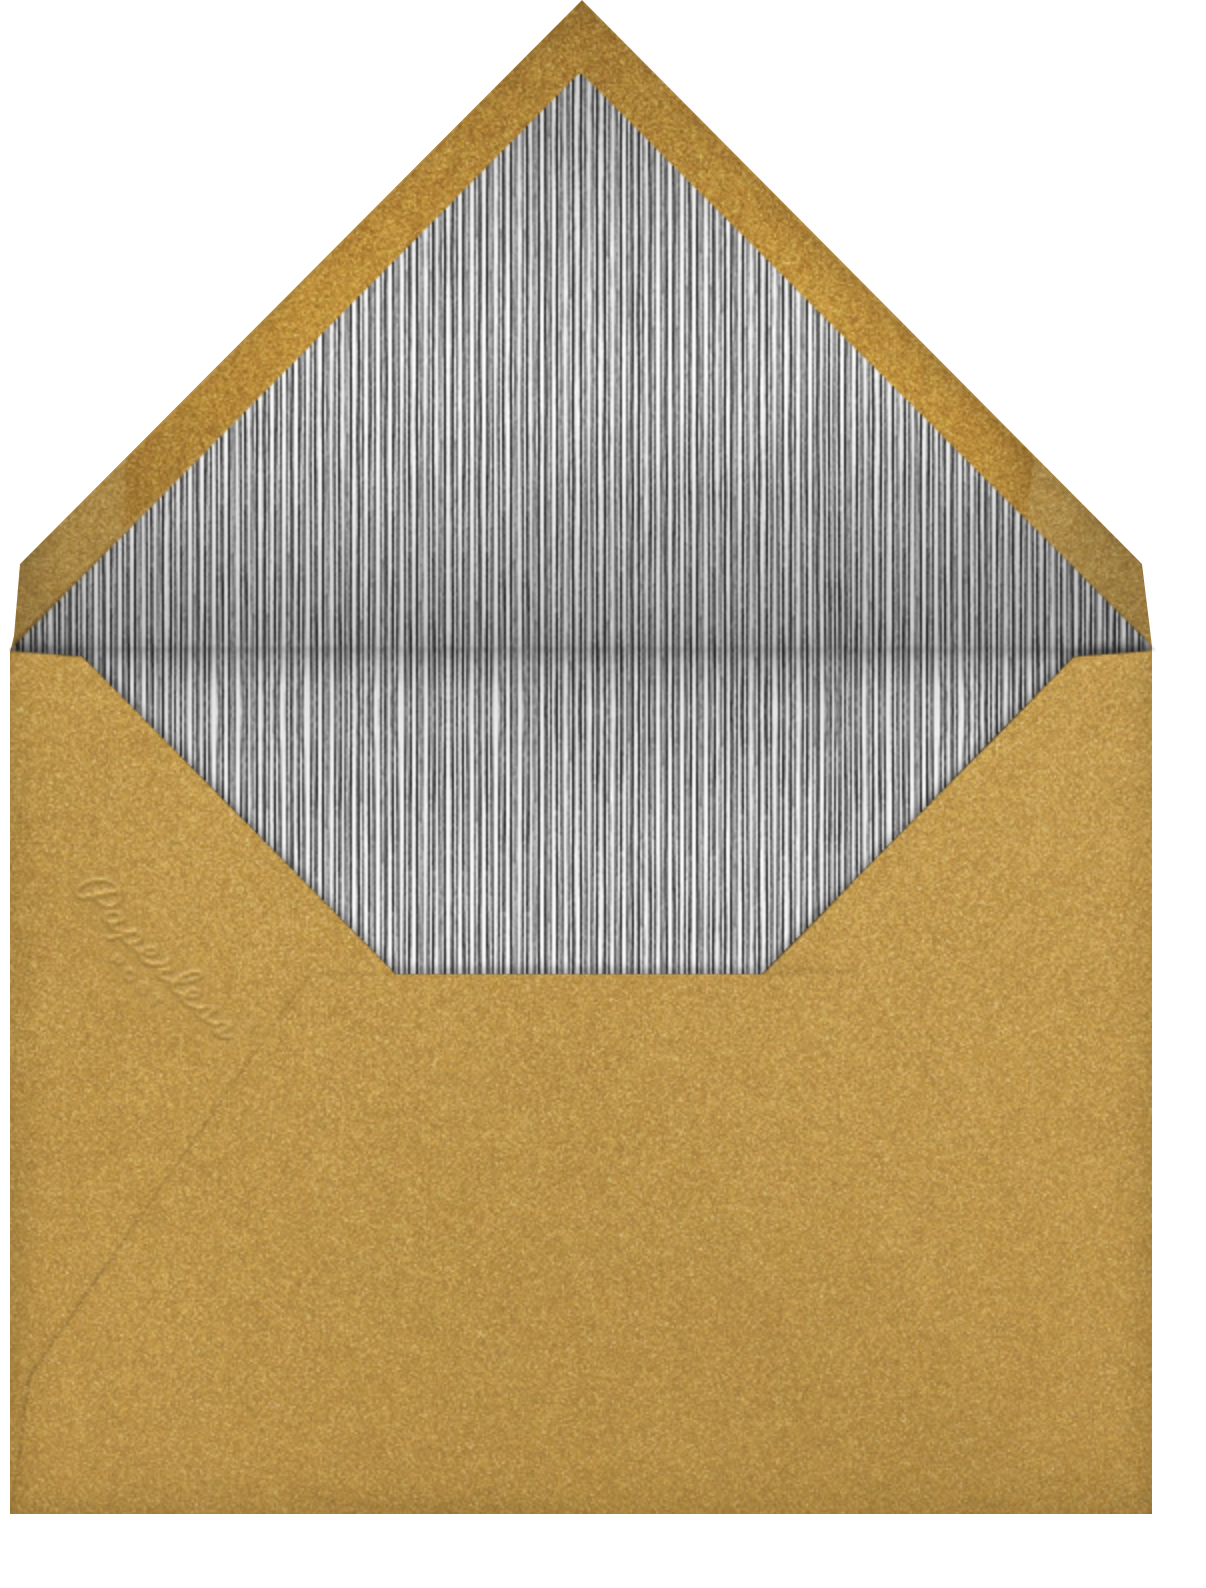 Naive Wave - Gold - Paperless Post - Graduation party - envelope back